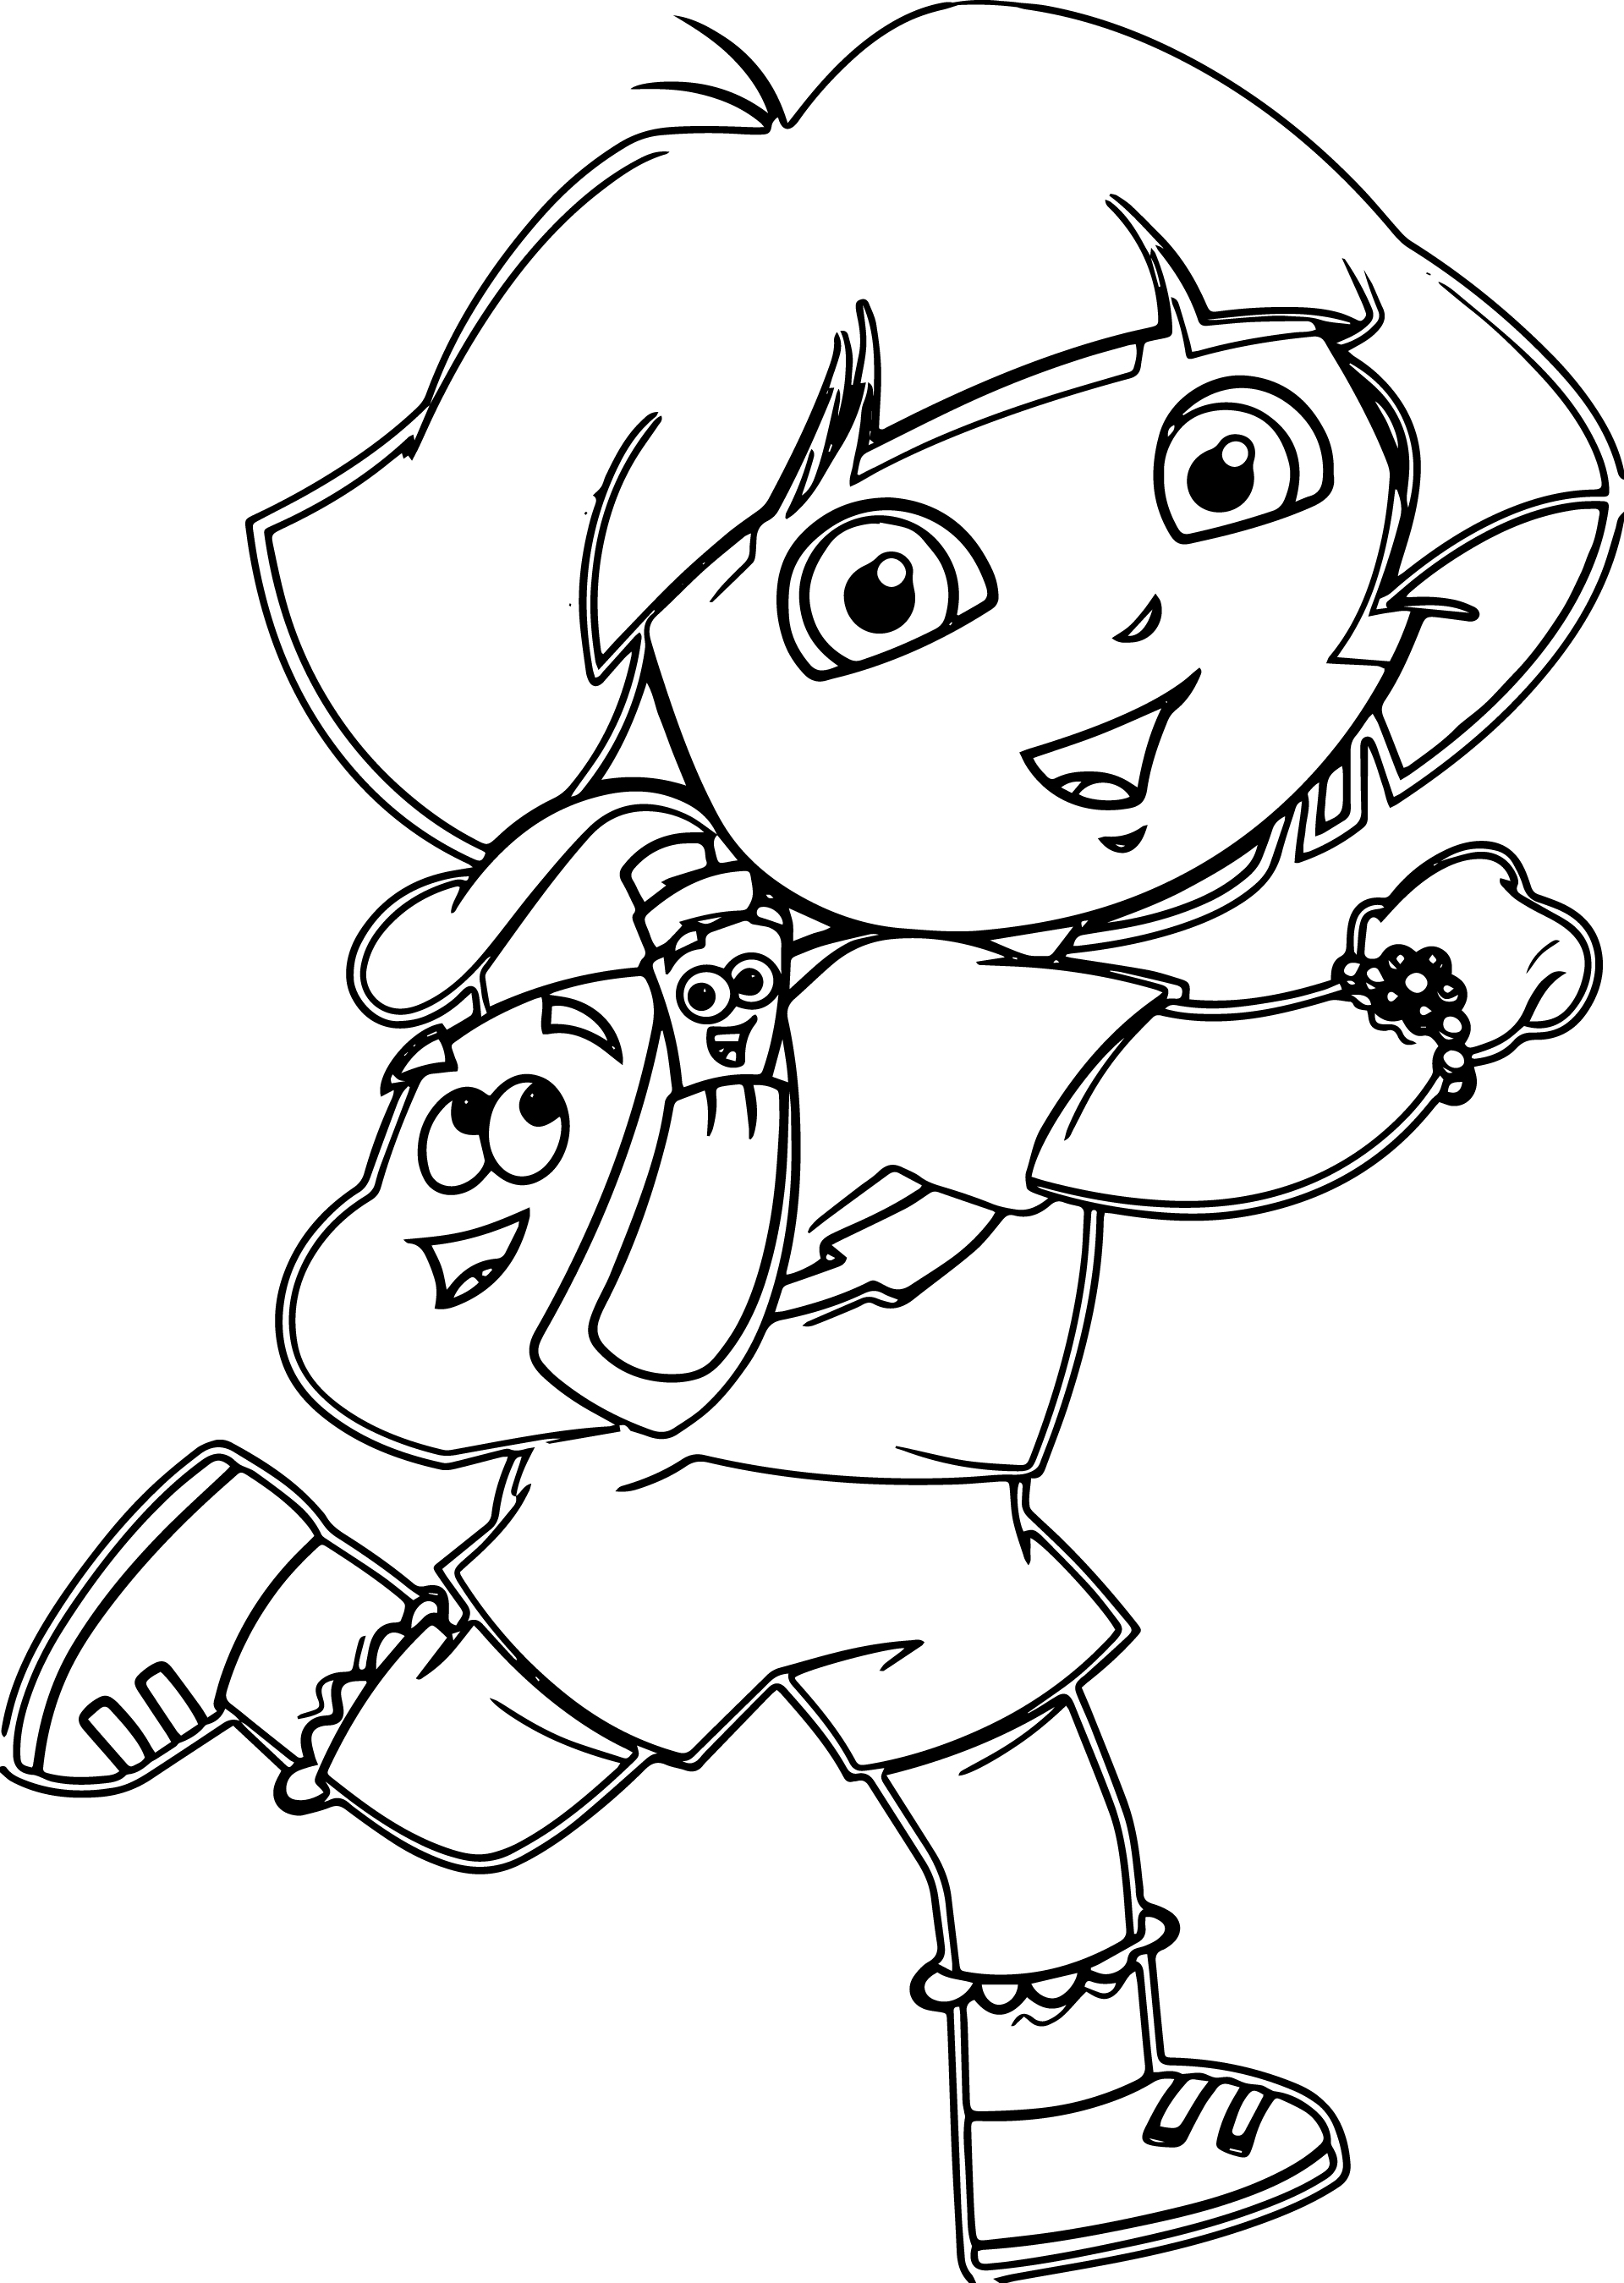 Dora Drawing at GetDrawings.com | Free for personal use Dora Drawing ...